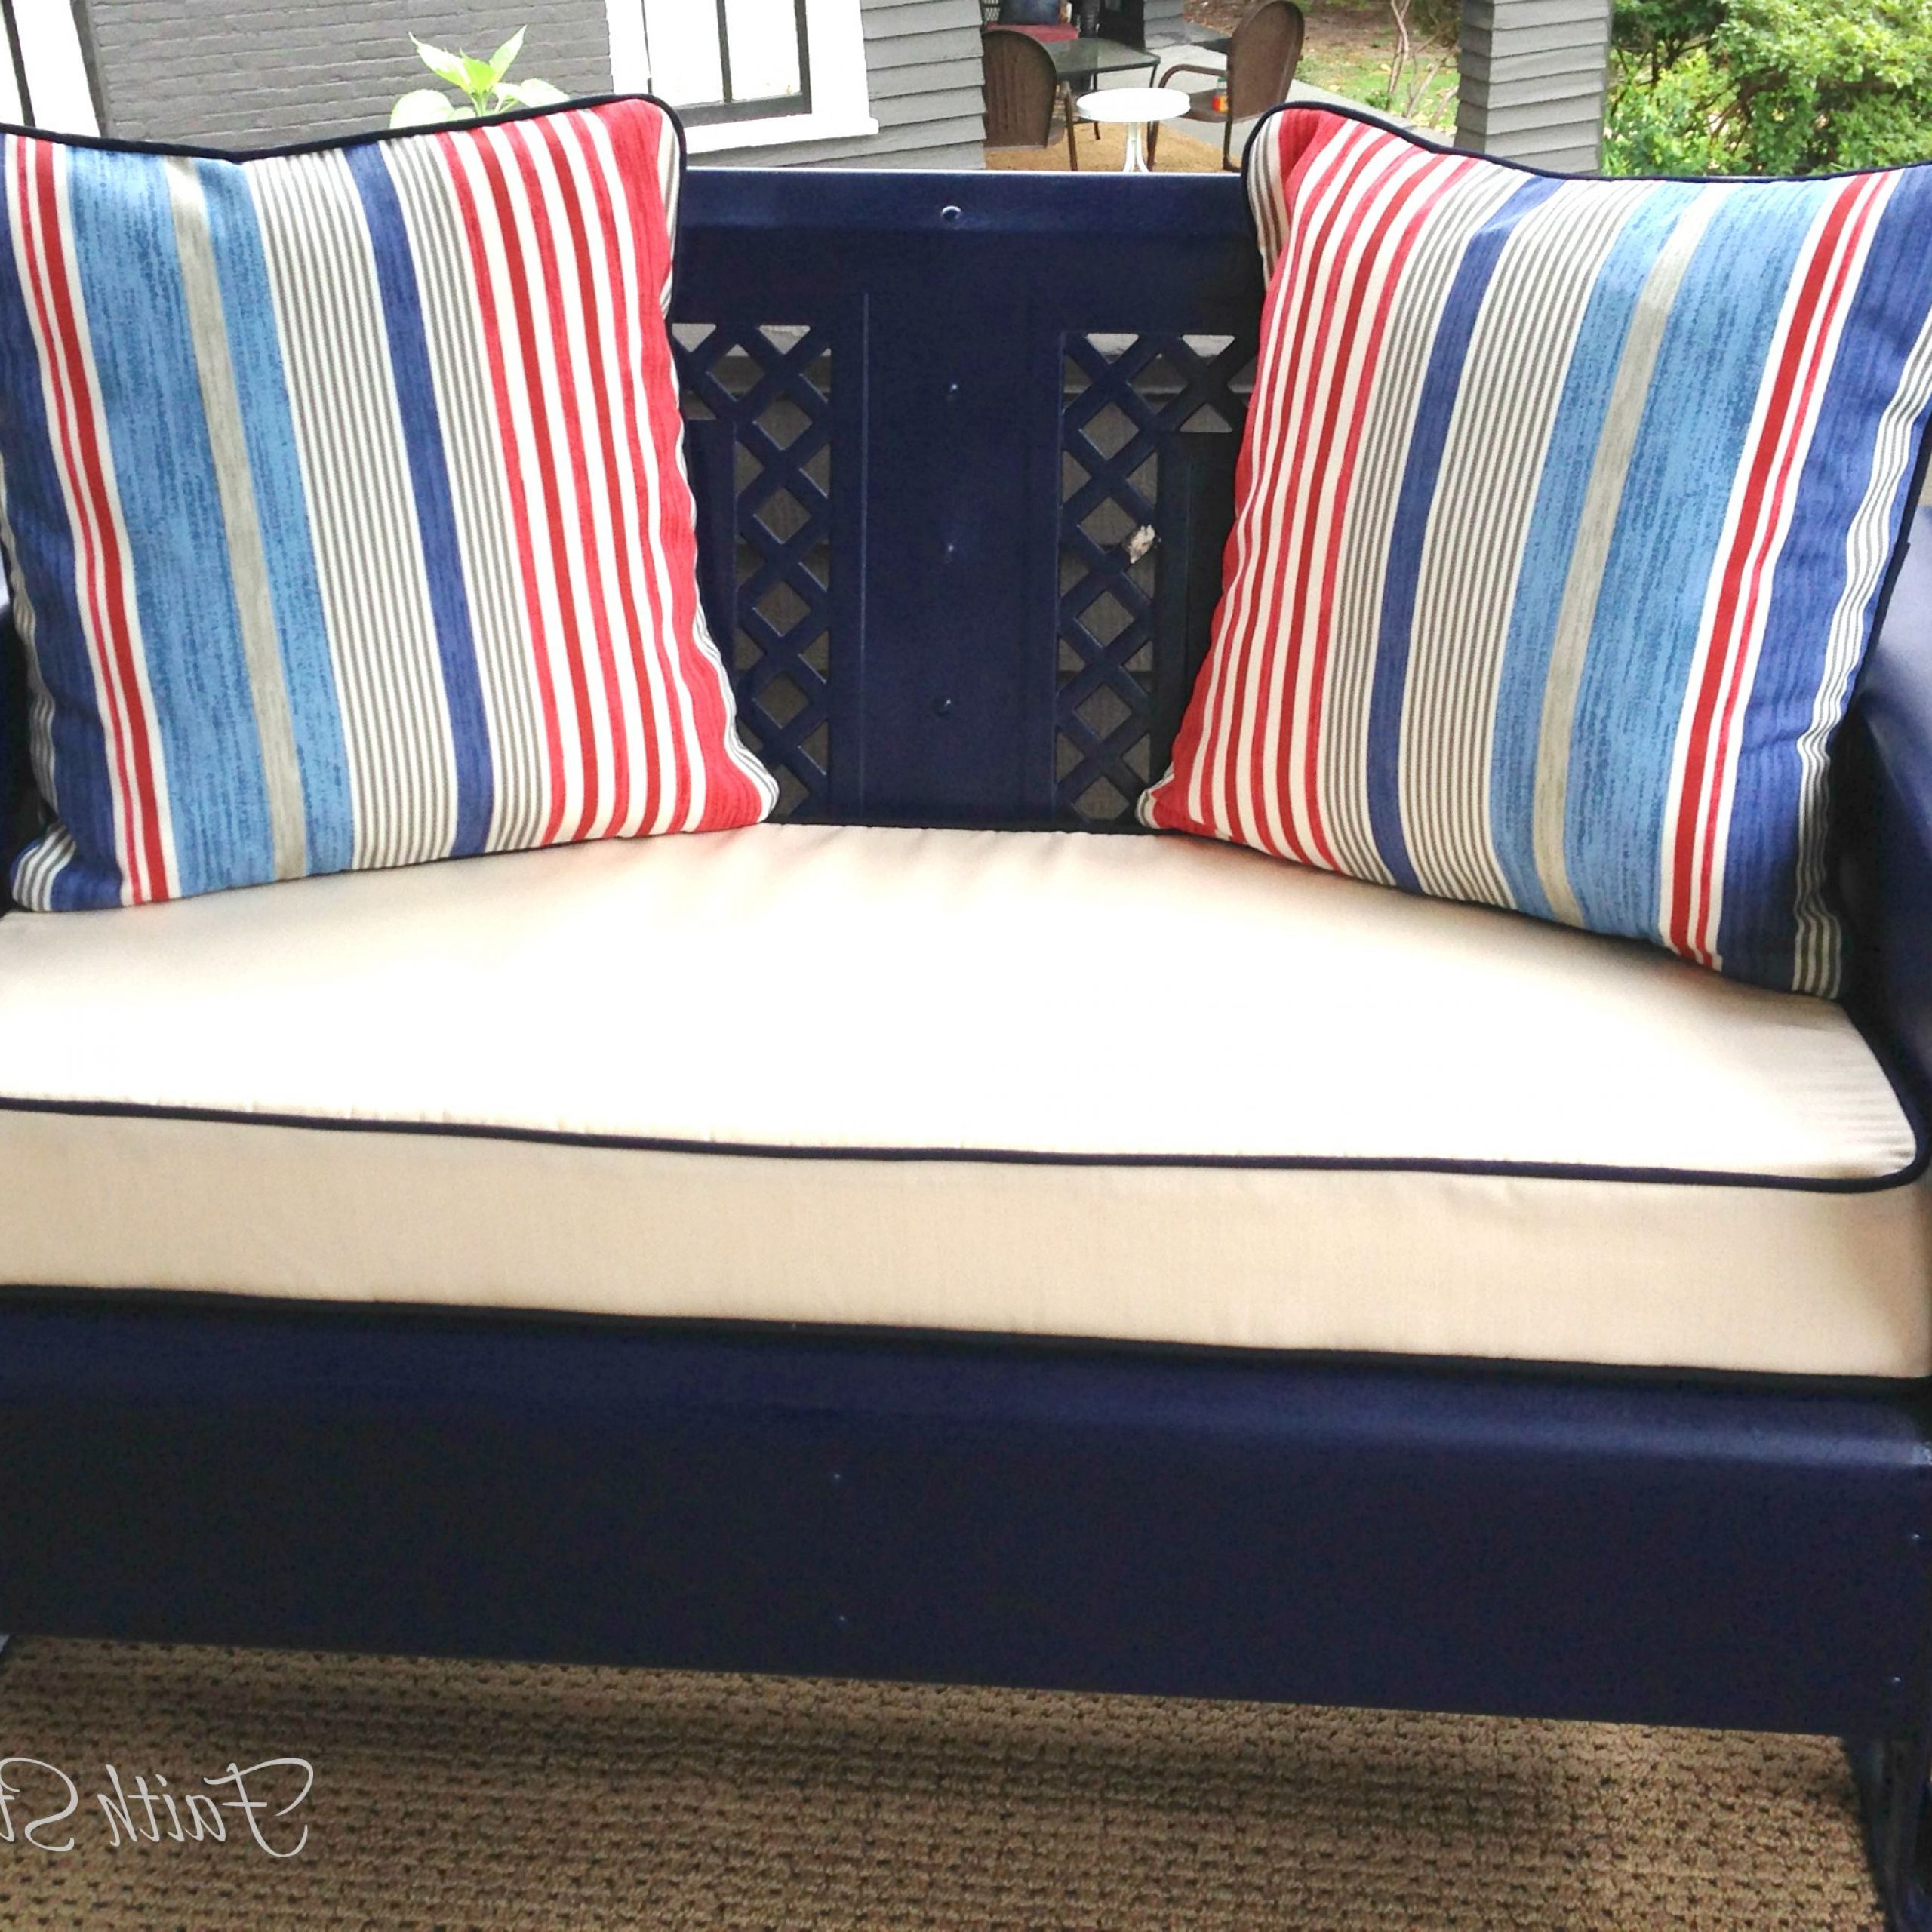 Aluminum Glider Benches With Cushion With Recent Furniture: Vintage Aluminum Porch Glider With Cushions For (View 6 of 30)